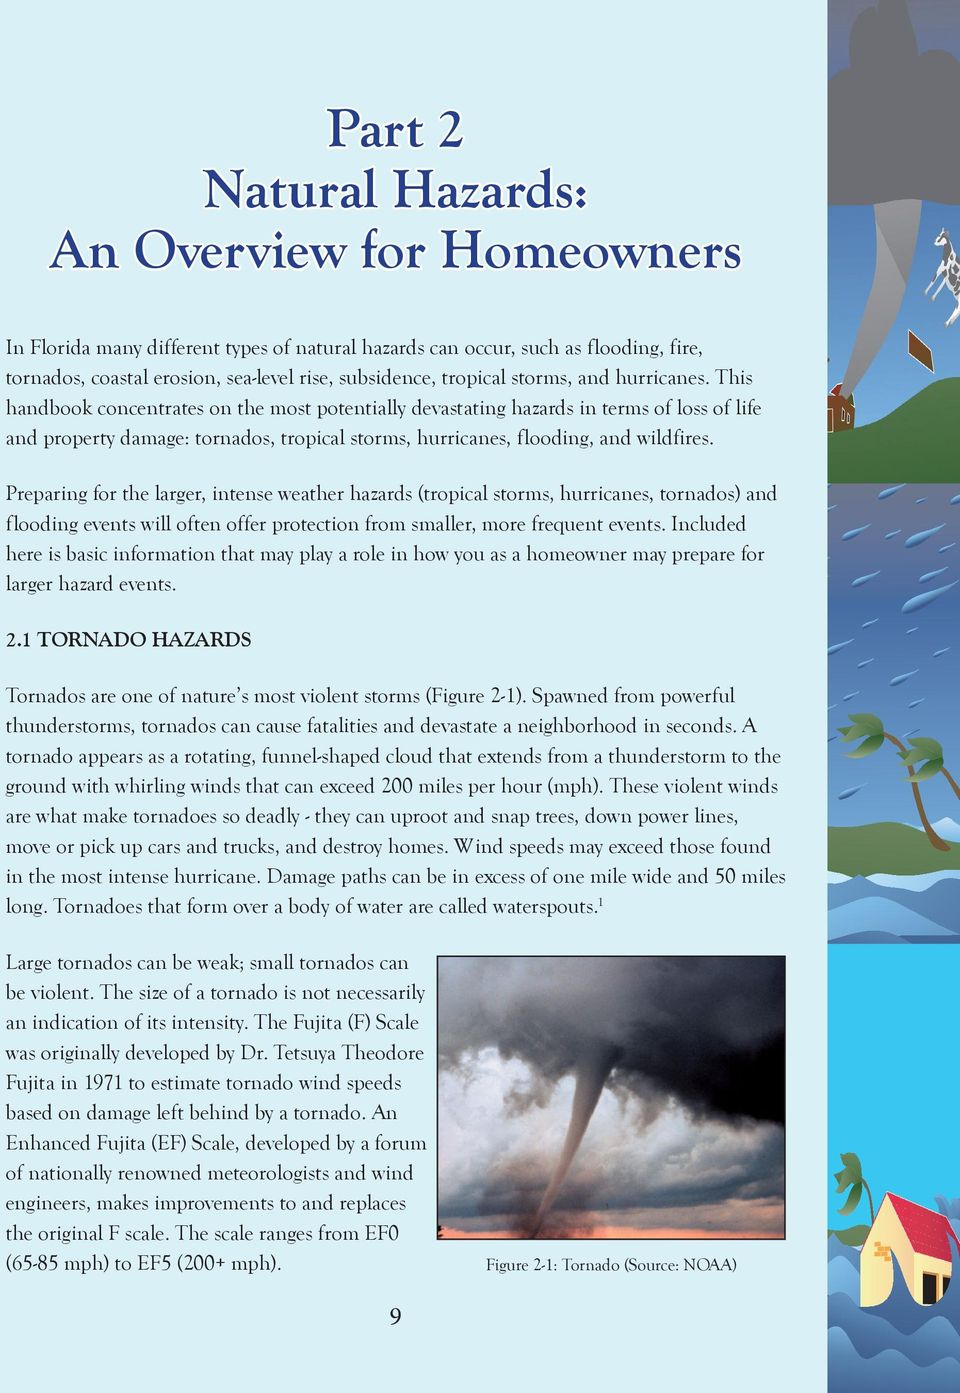 This handbook concentrates on the most potentially devastating hazards in terms of loss of life and property damage: tornados, tropical storms, hurricanes, flooding, and wildfires.